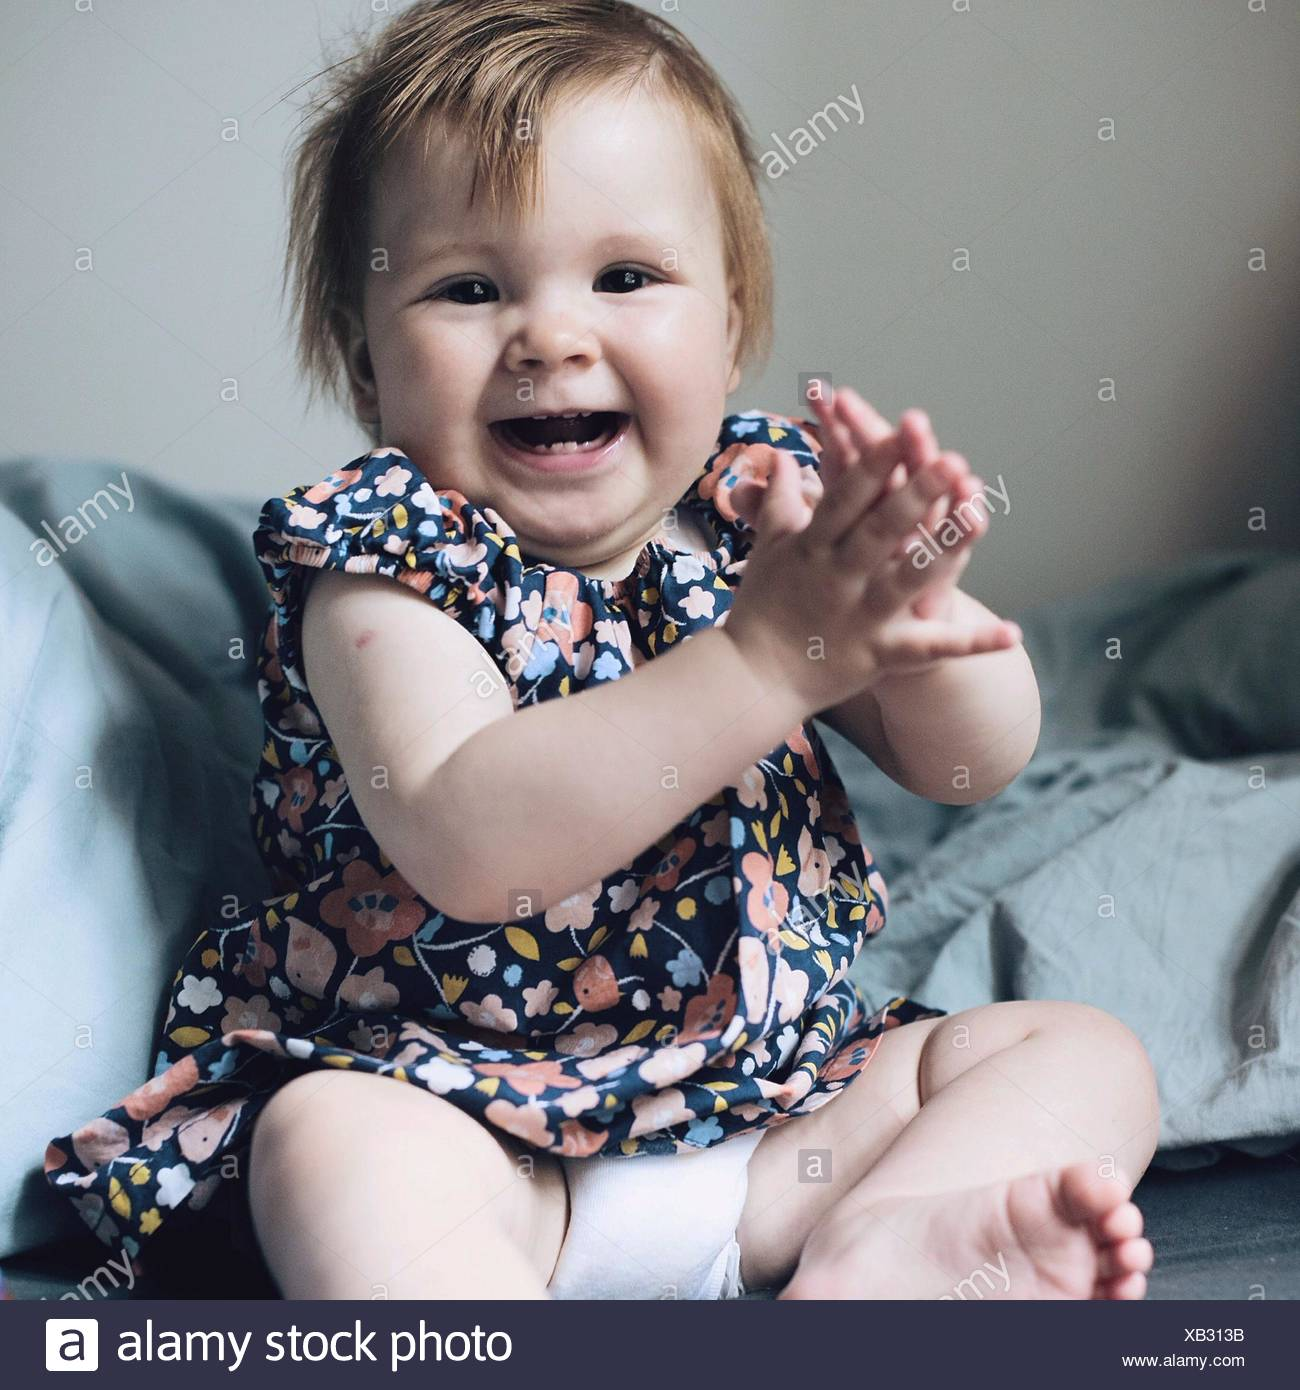 Baby Girl Laughing Stock Photo